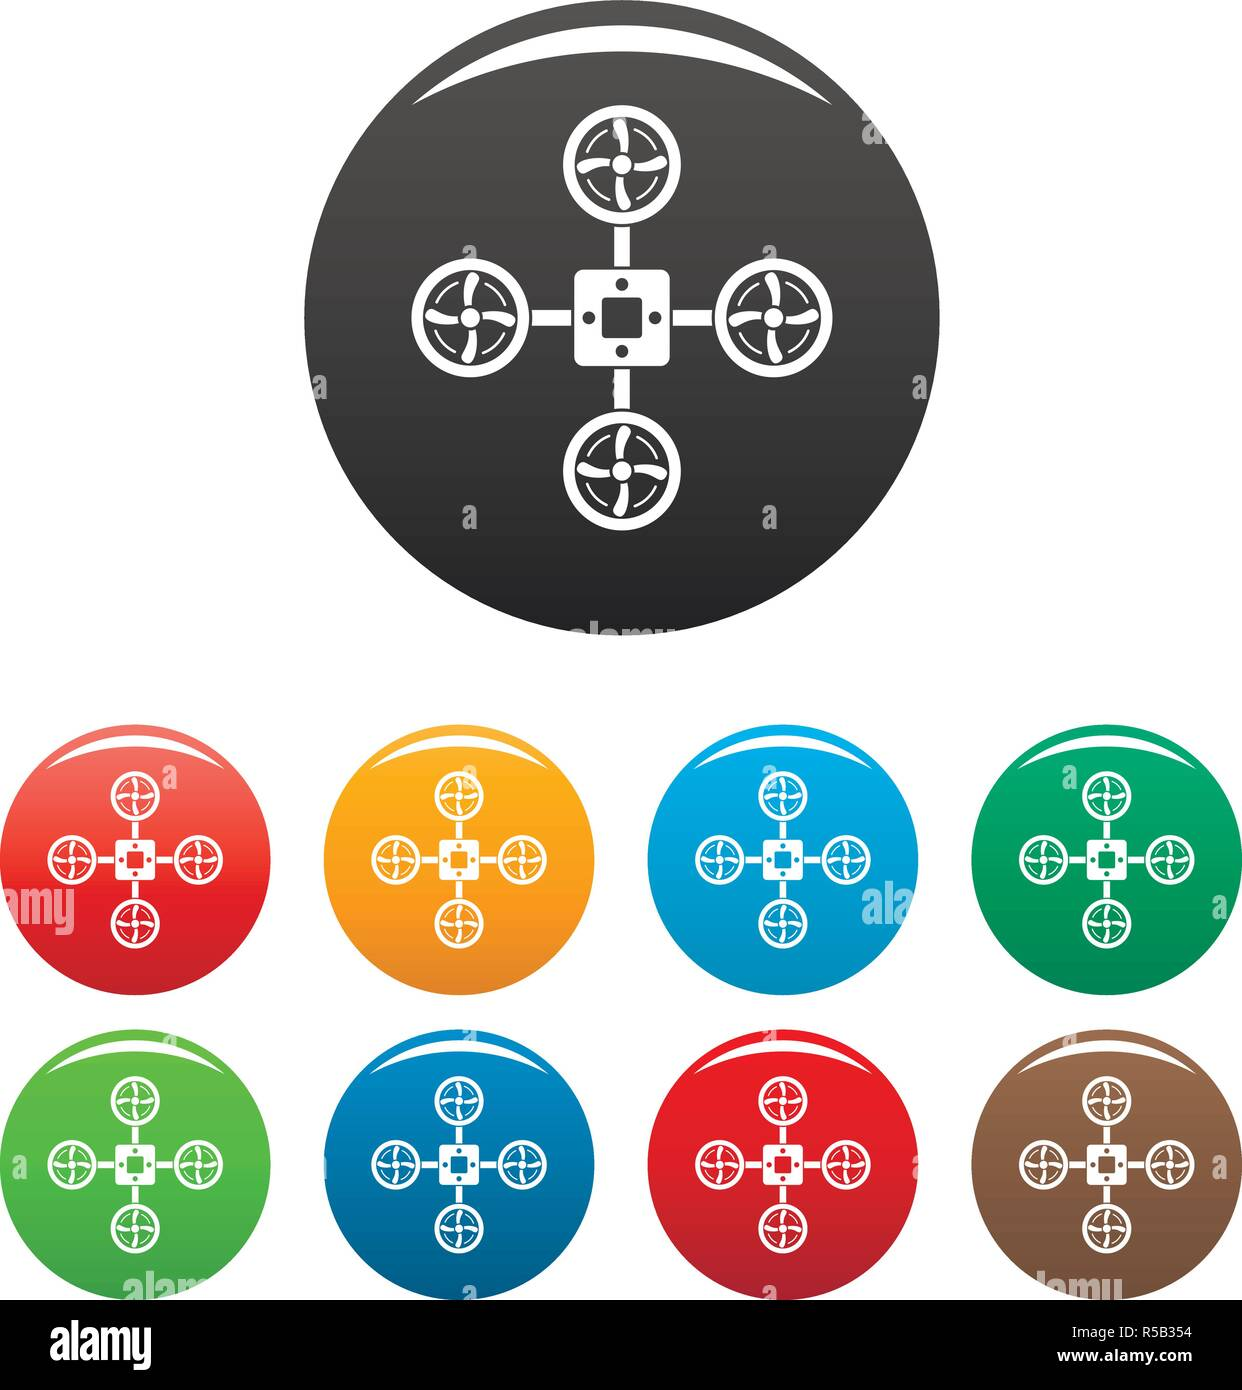 Spy drone icons set 9 color vector isolated on white for any design - Stock Vector